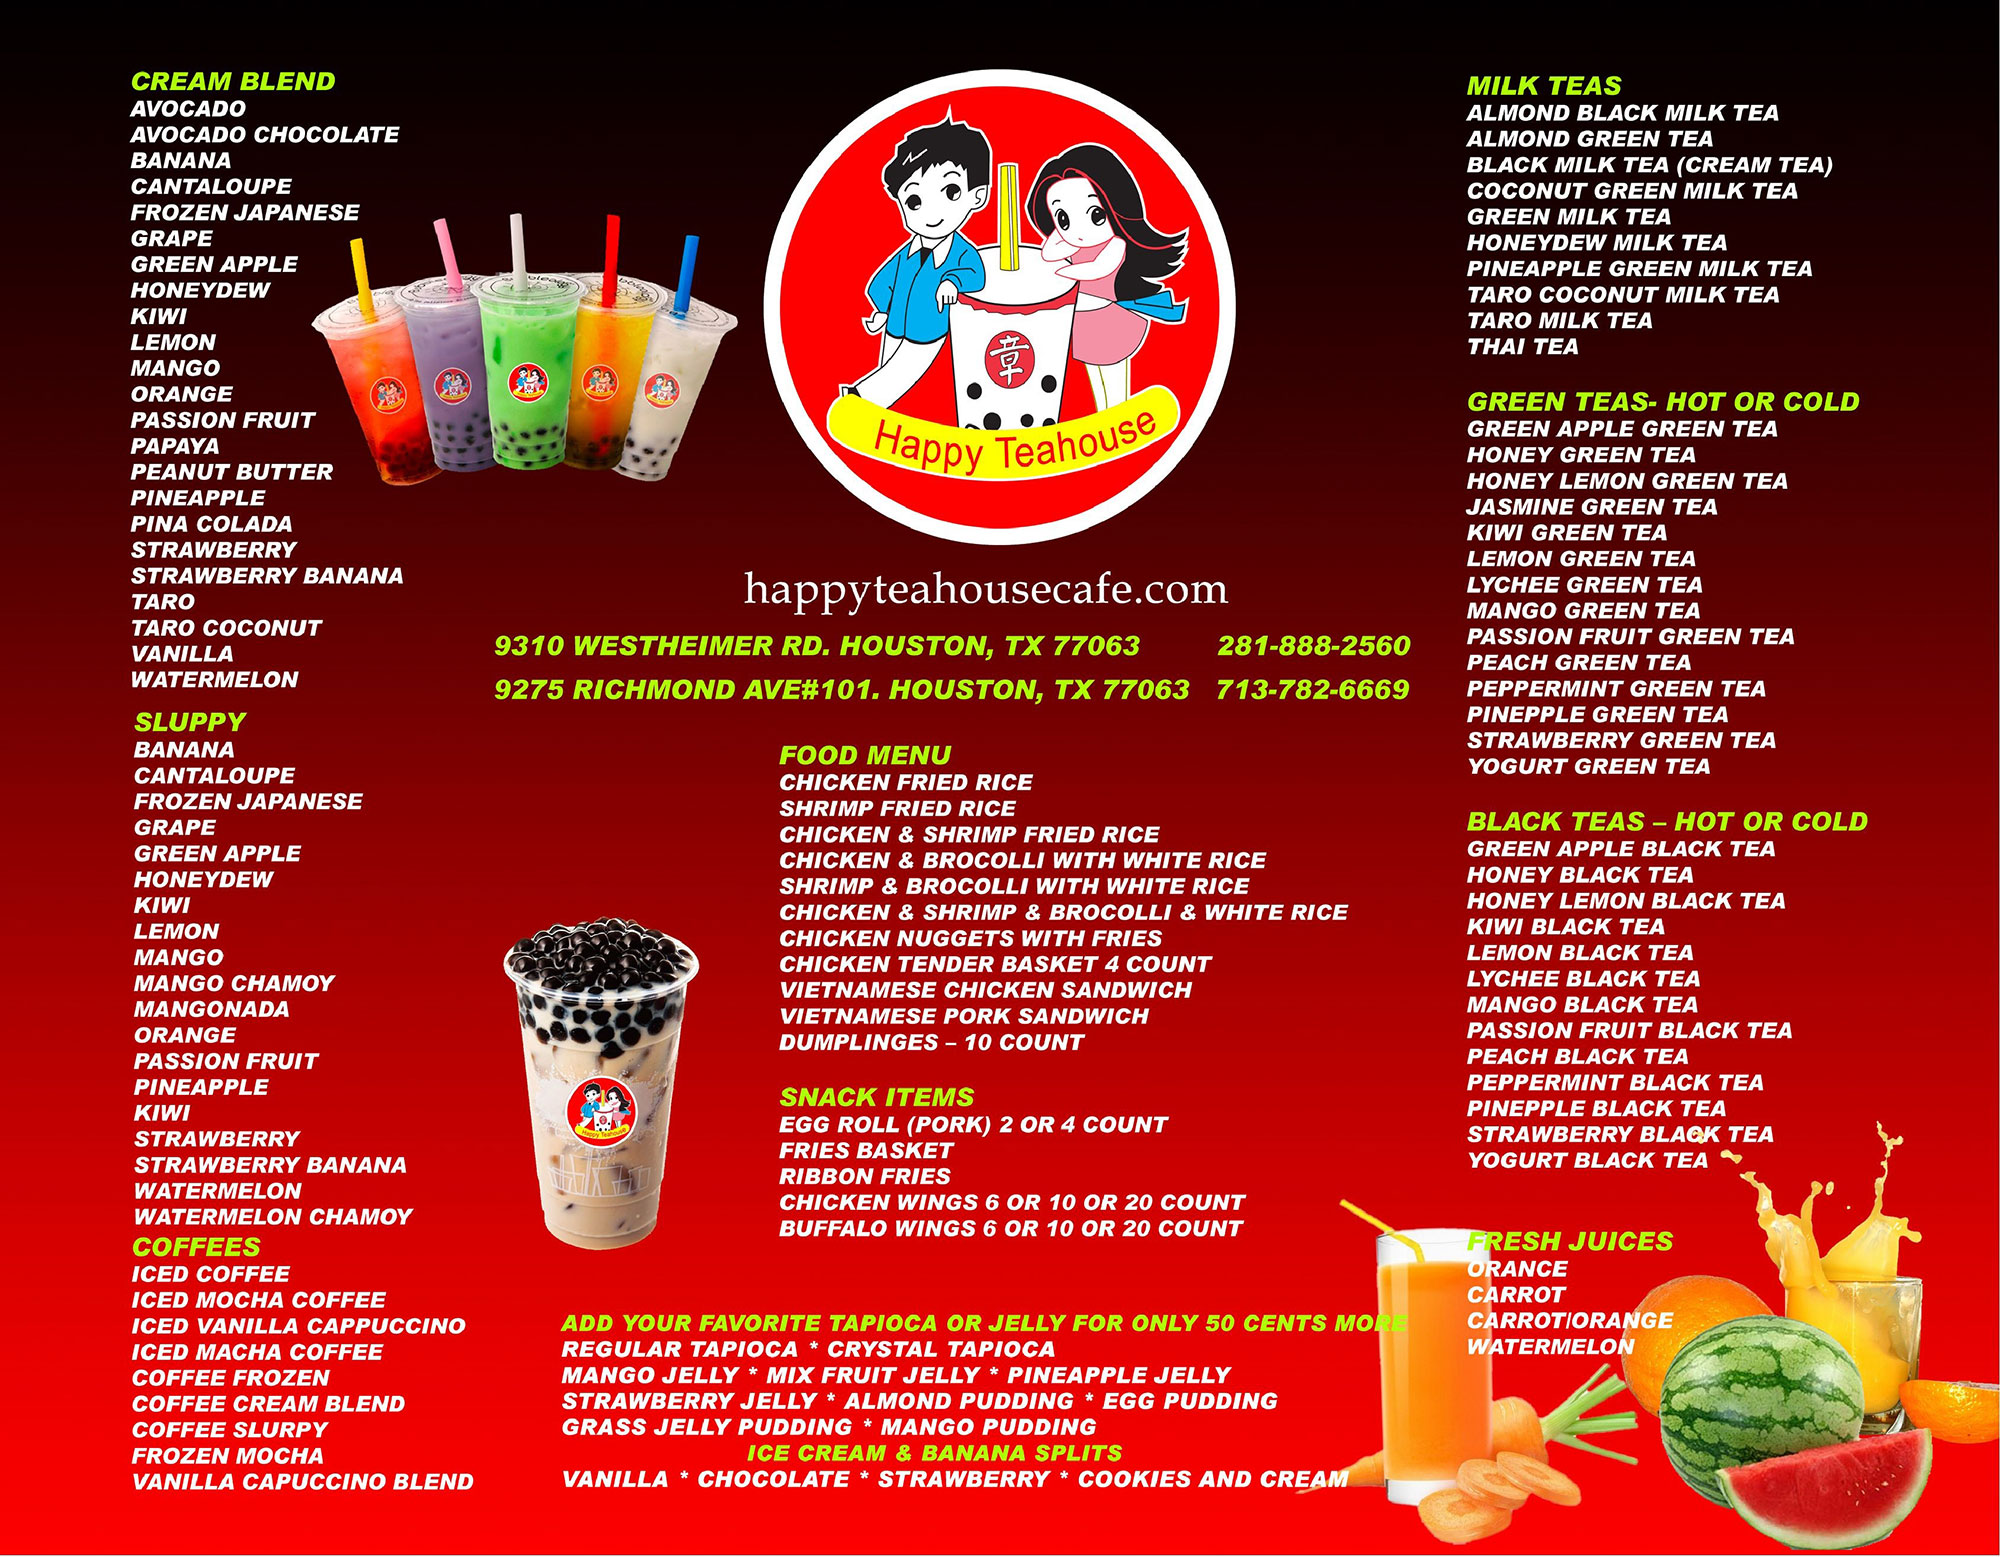 Happy Teahouse Menu